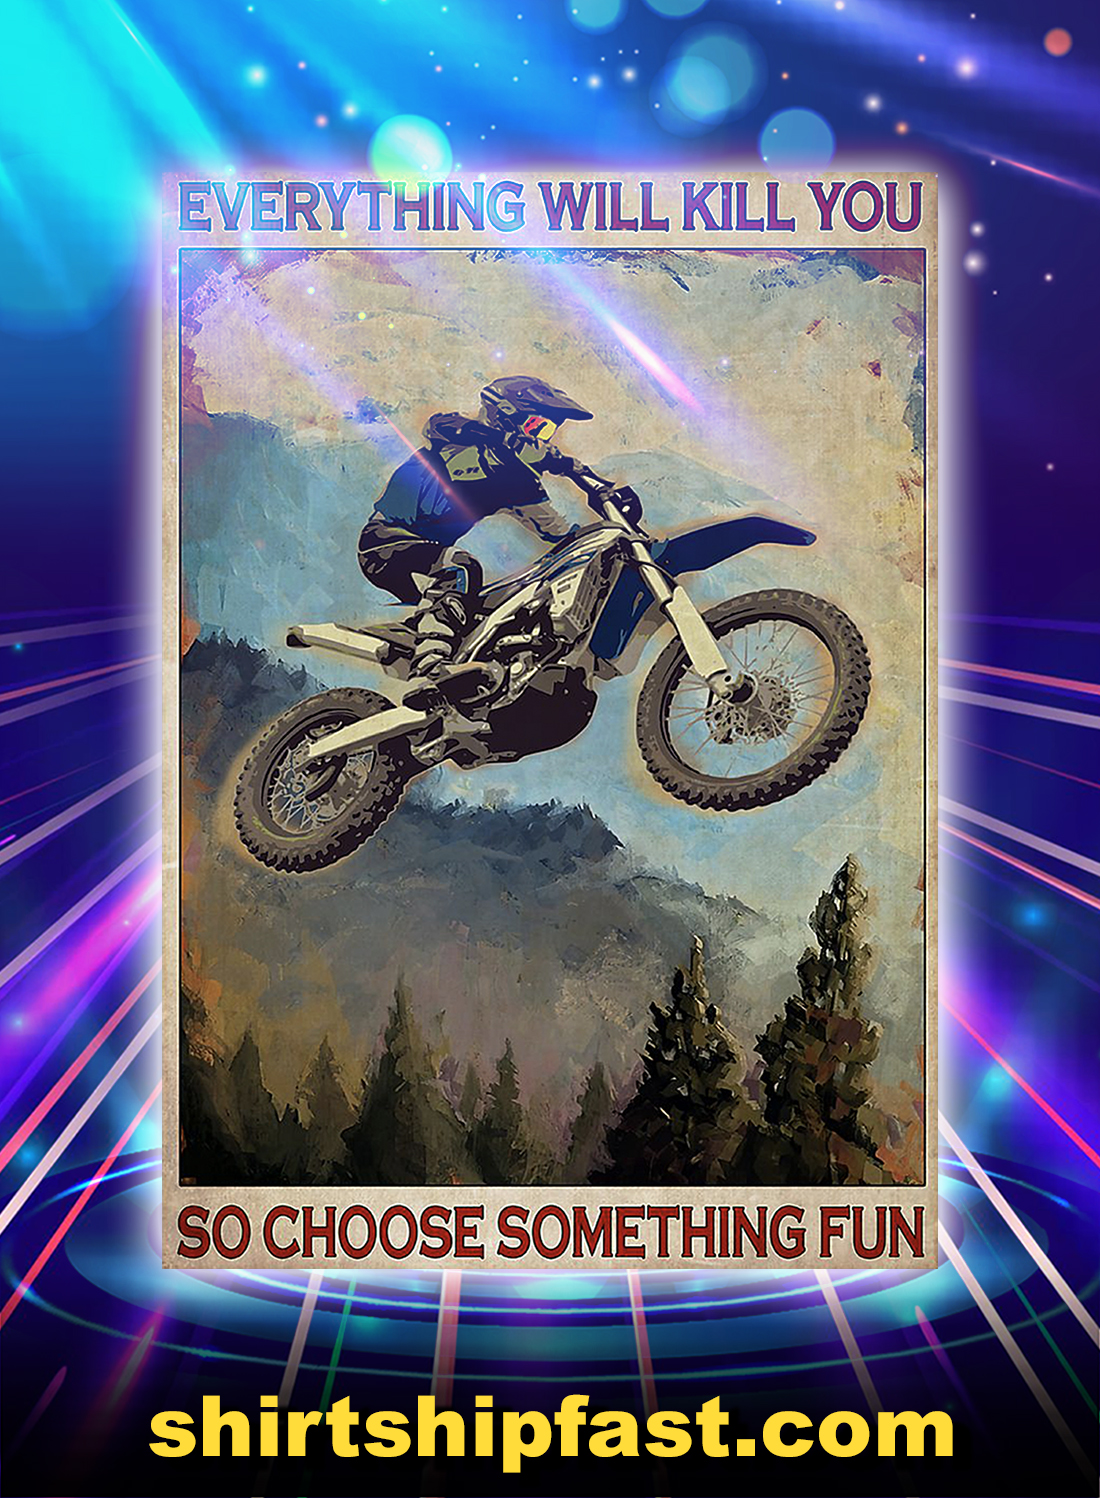 Enduro everything will kill you so choose something fun poster - A4